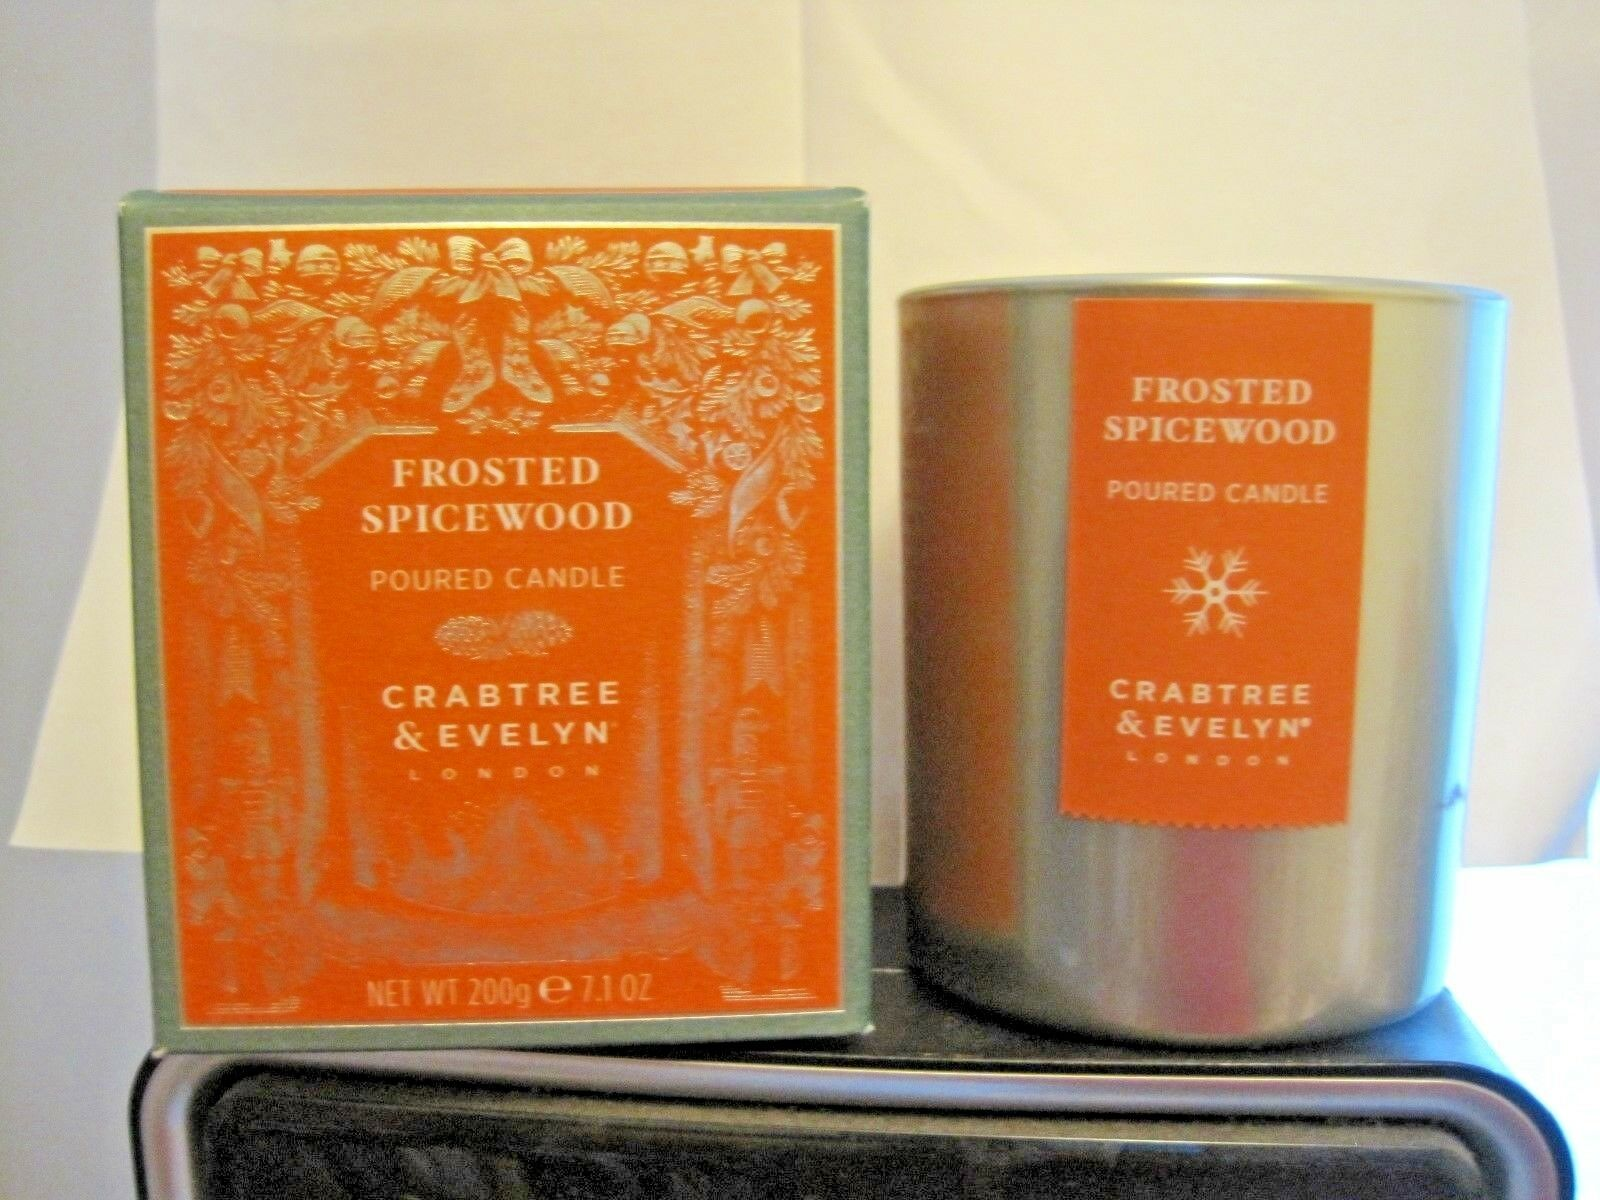 Crabtree & Evelyn FROSTED SPICEWOOD  Candle Glass holderNew In Box 7.1  oz